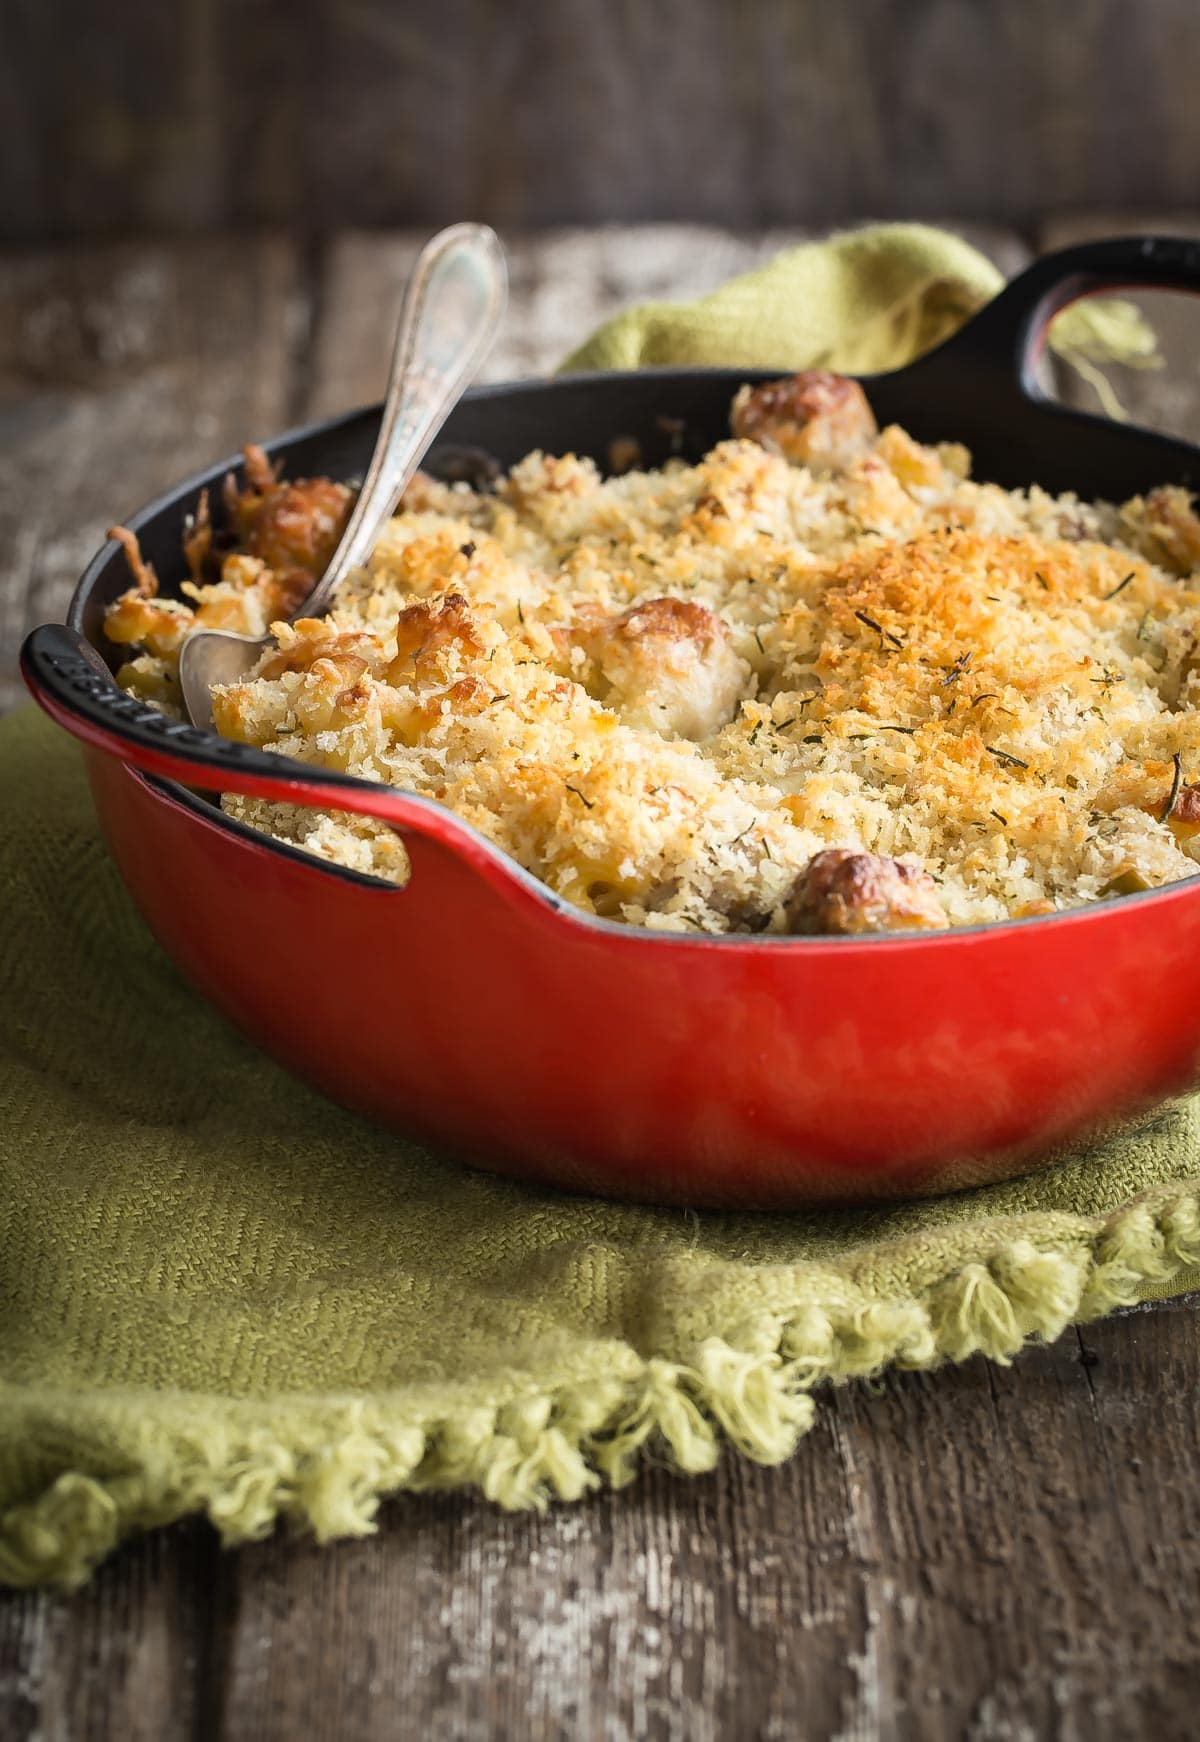 Creamy Macaroni Cheese mixed with chunks of chicken apple sausage and sliced fennel. Just when you thought mac and cheese couldn't get any better, it totally did!